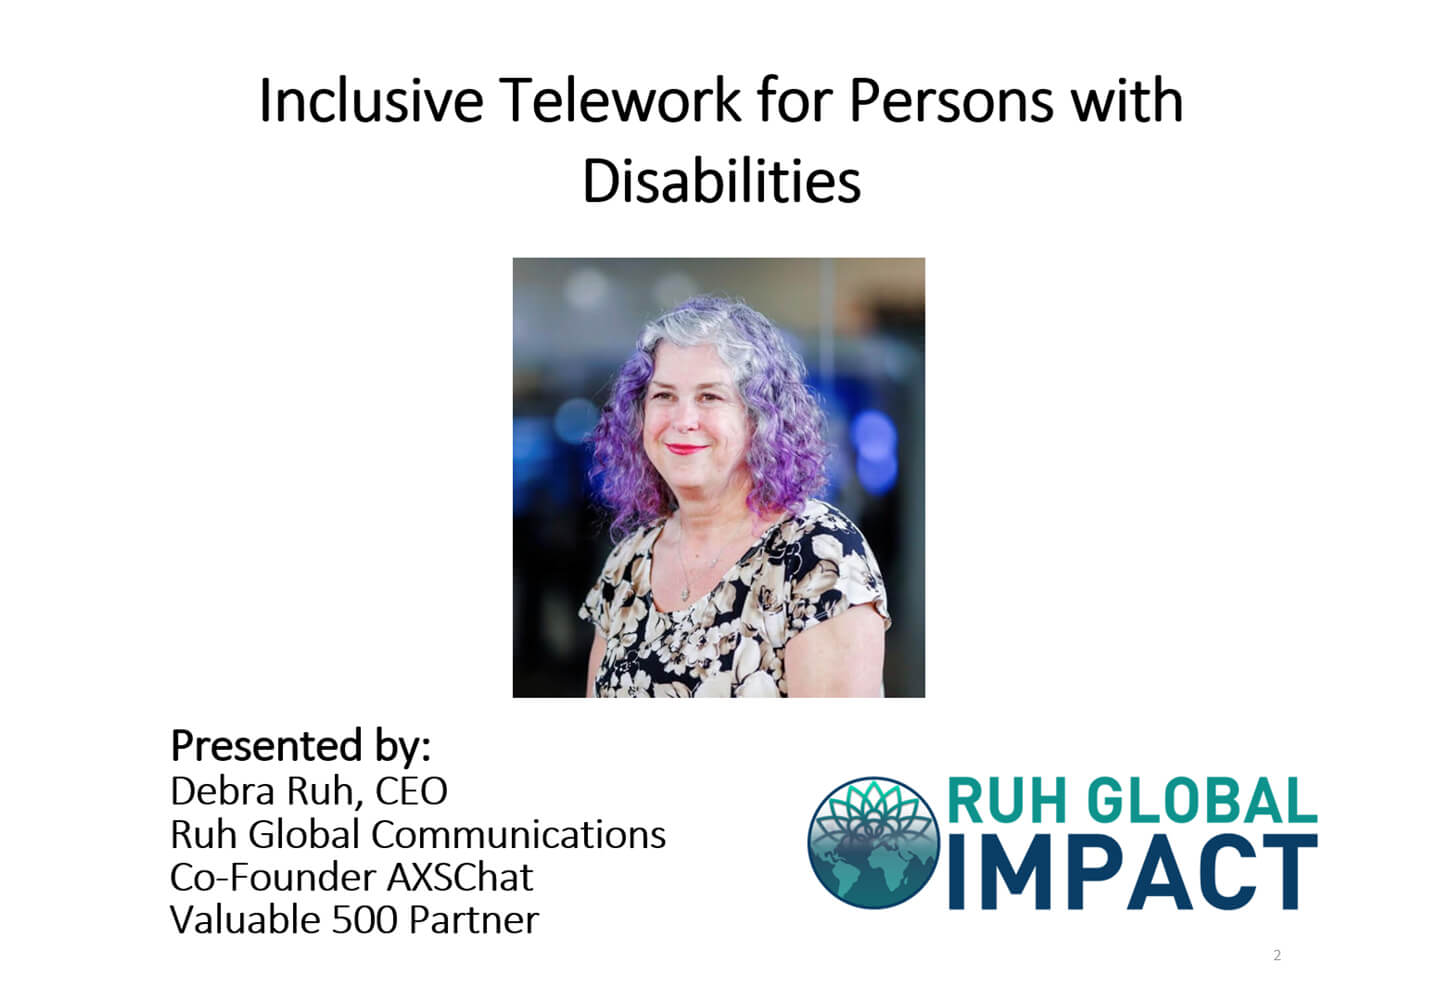 Inclusive Telework for People with Disabilities